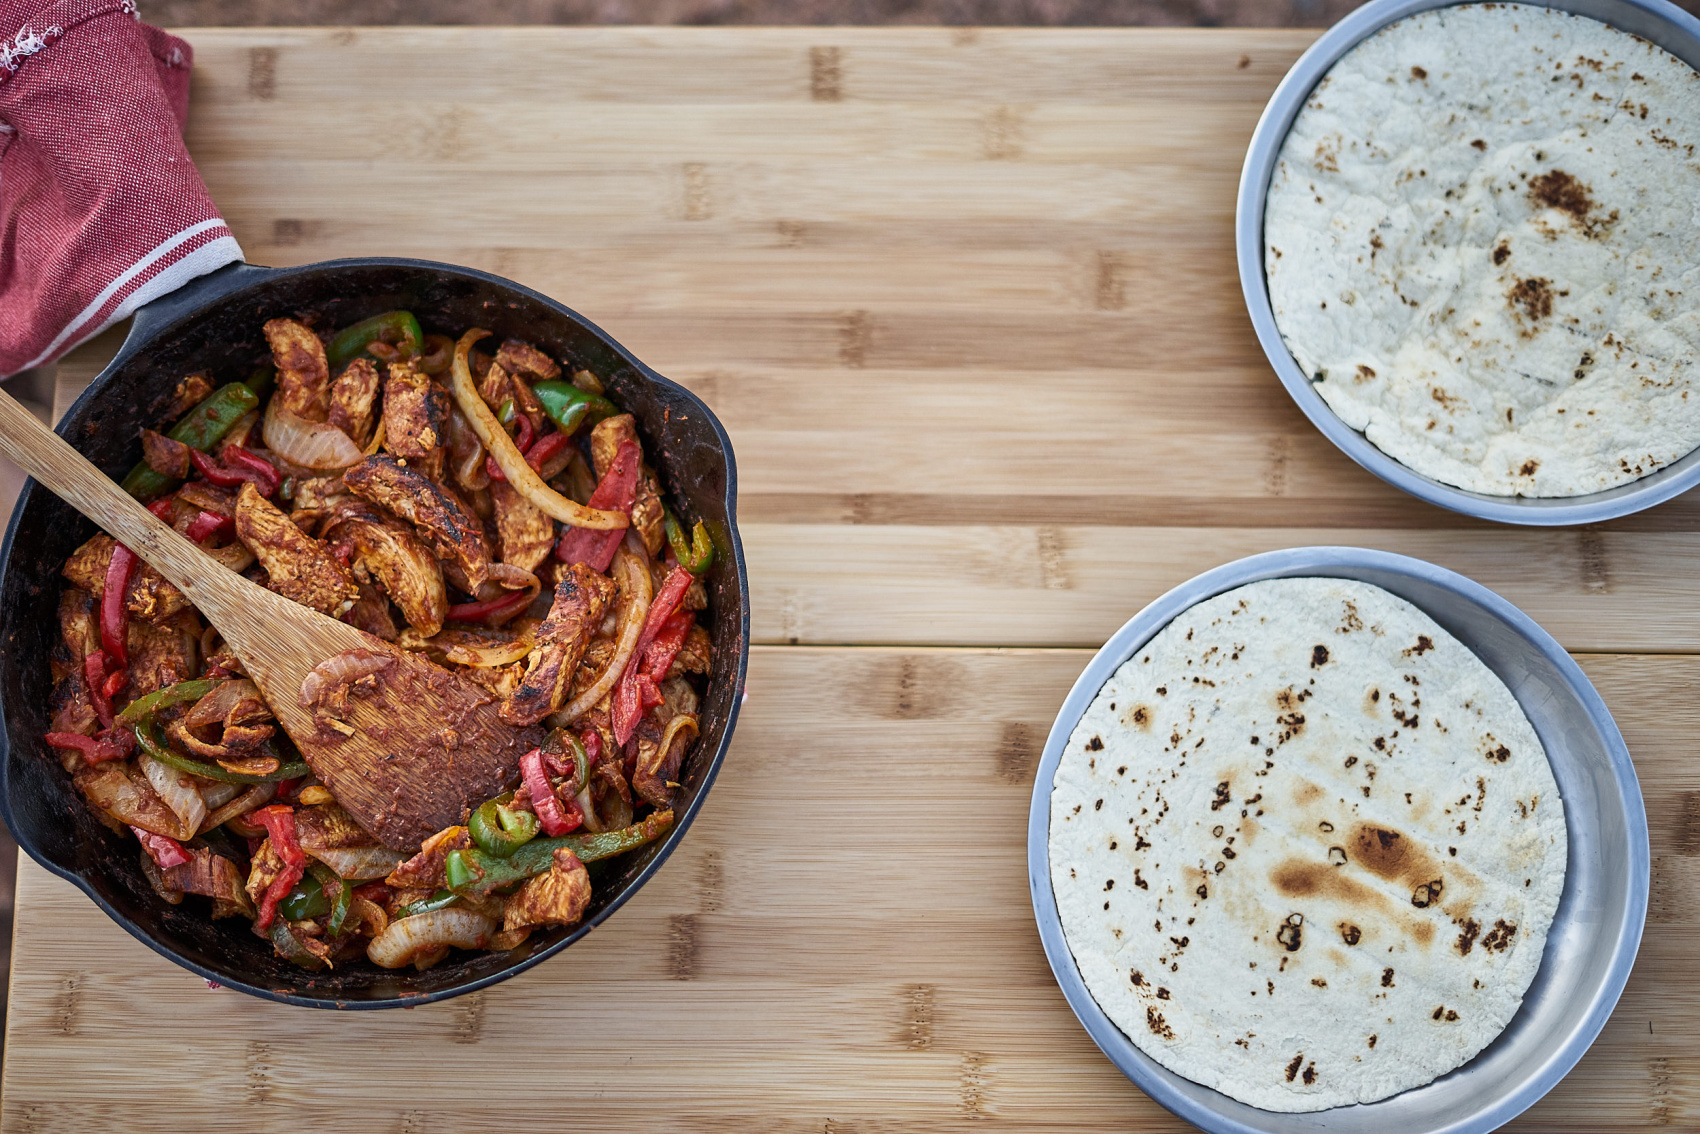 Camp dinner recipe - grilled chicken fajitas. Easy and simple for a large group. www.amandaoutside.com